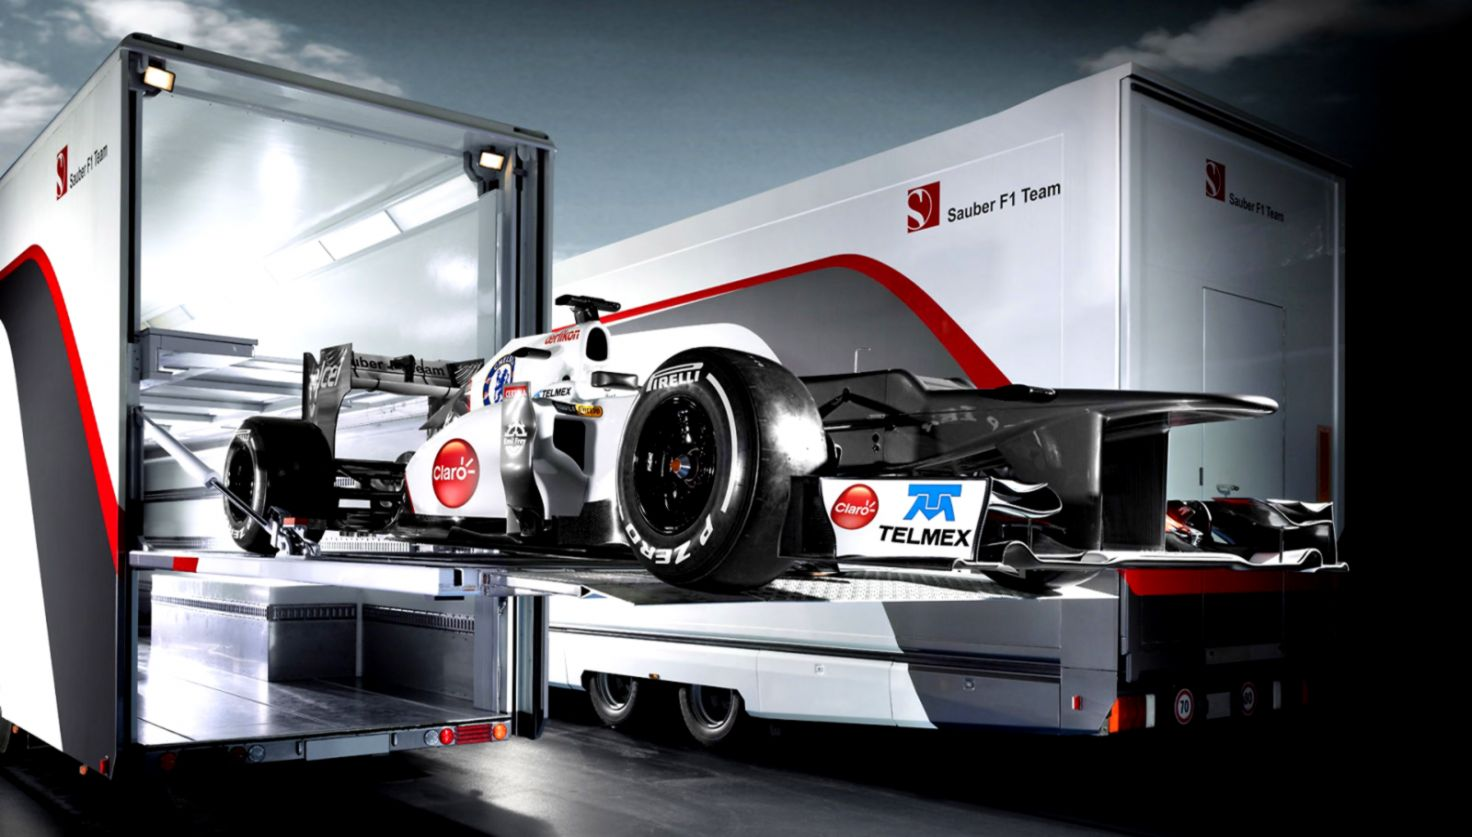 Formula 1 Garage Hd Wallpaper Wallpapers Ideas